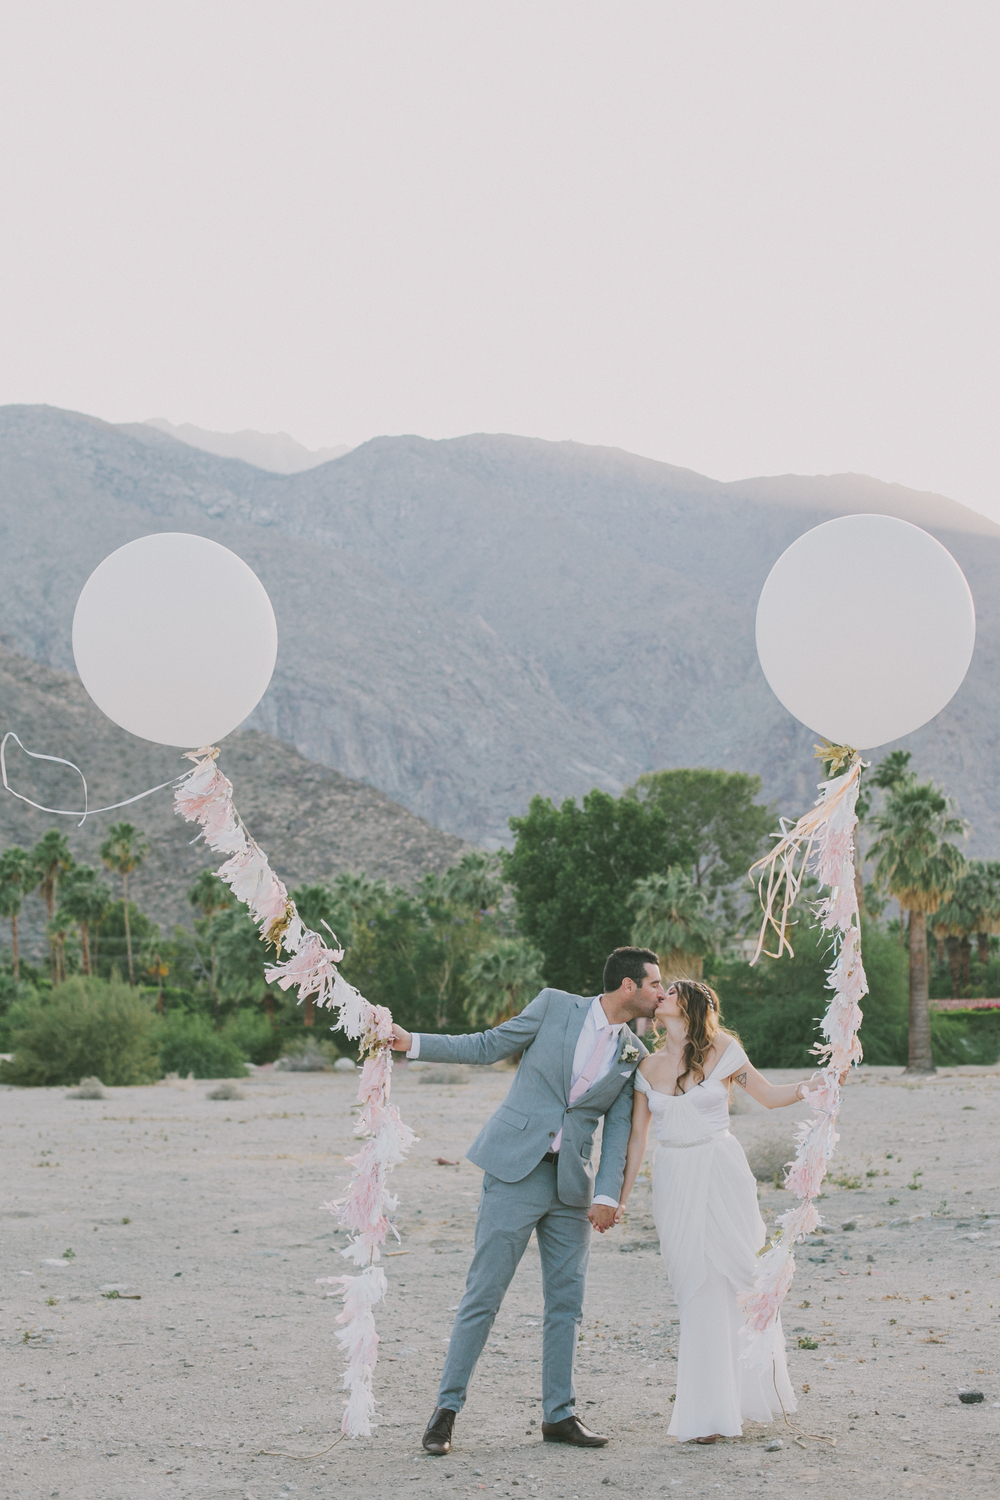 Real Winifred Bean bride Jenni wearing Tulipe vintage-inspired wedding dress at her Palm Springs wedding